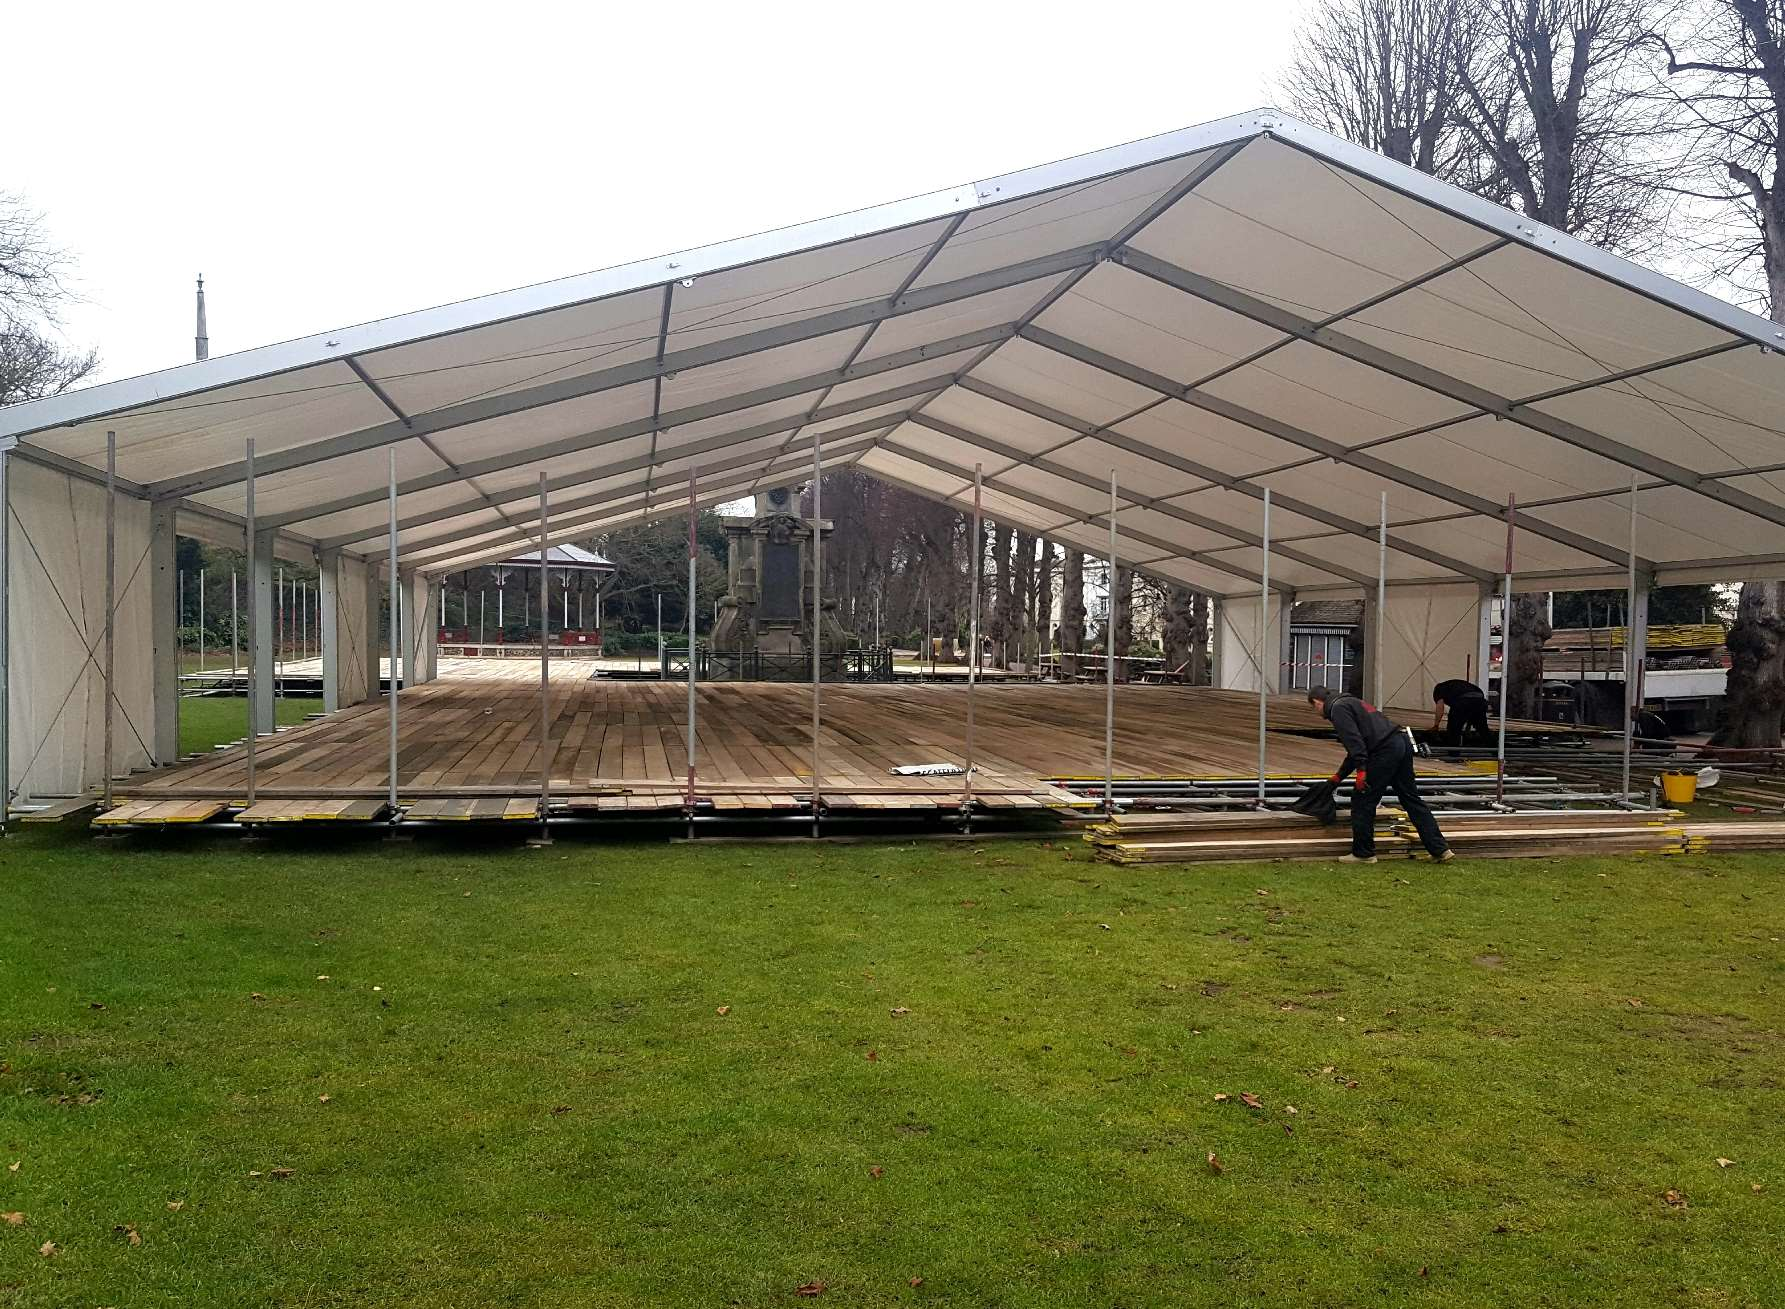 The opening of the ice rink in Canterbury's Dane John Gardens has been further delayed